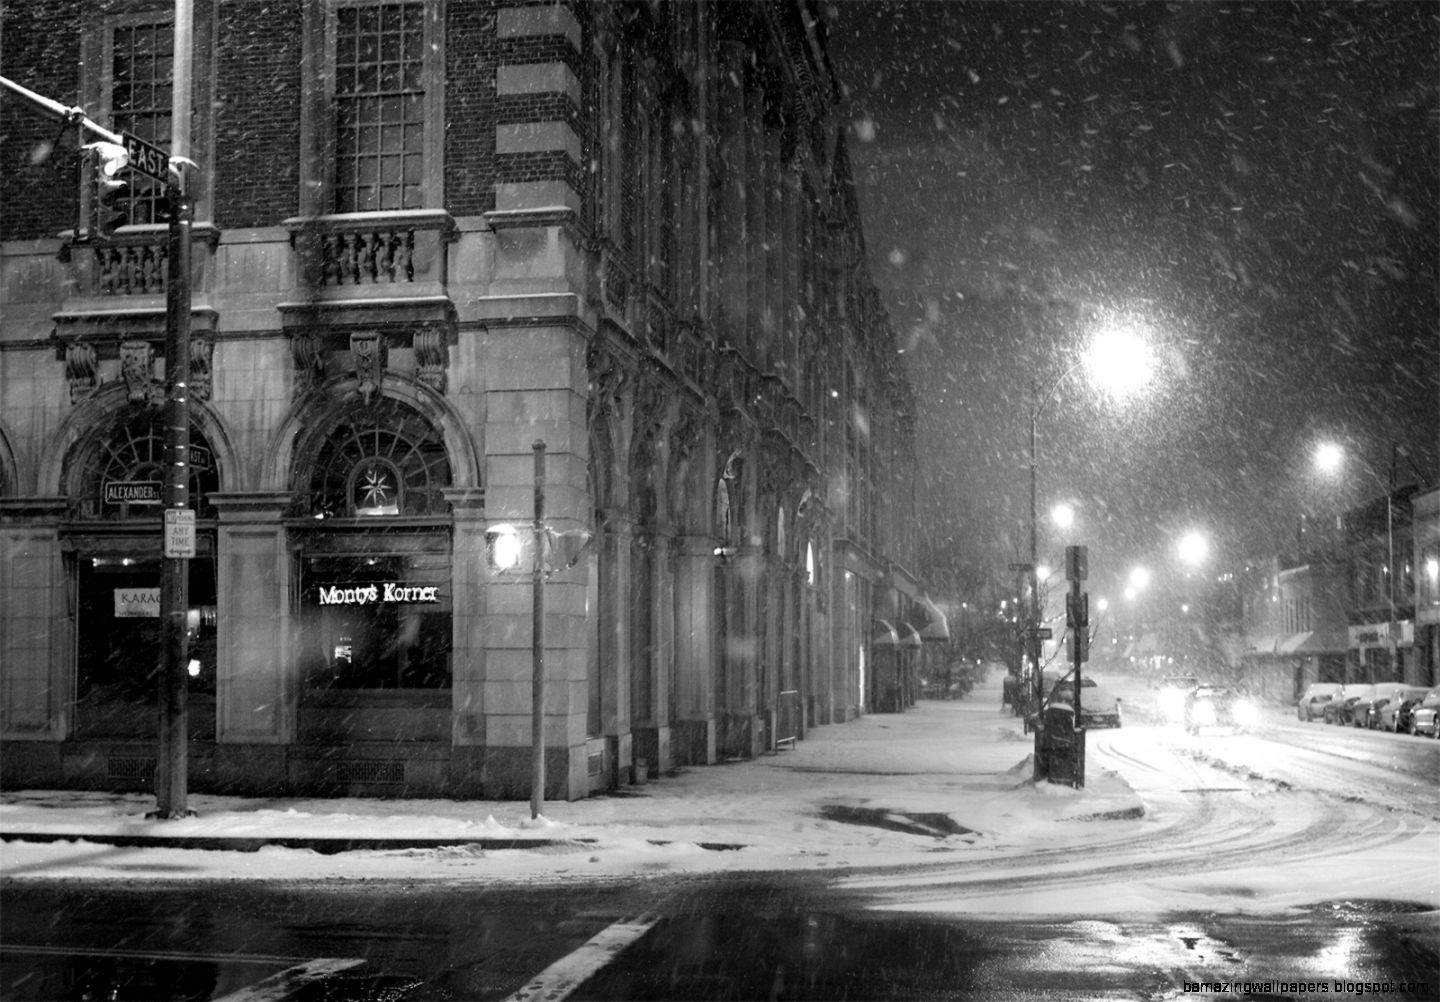 City Night in winter snowy wallpaper by BillGate